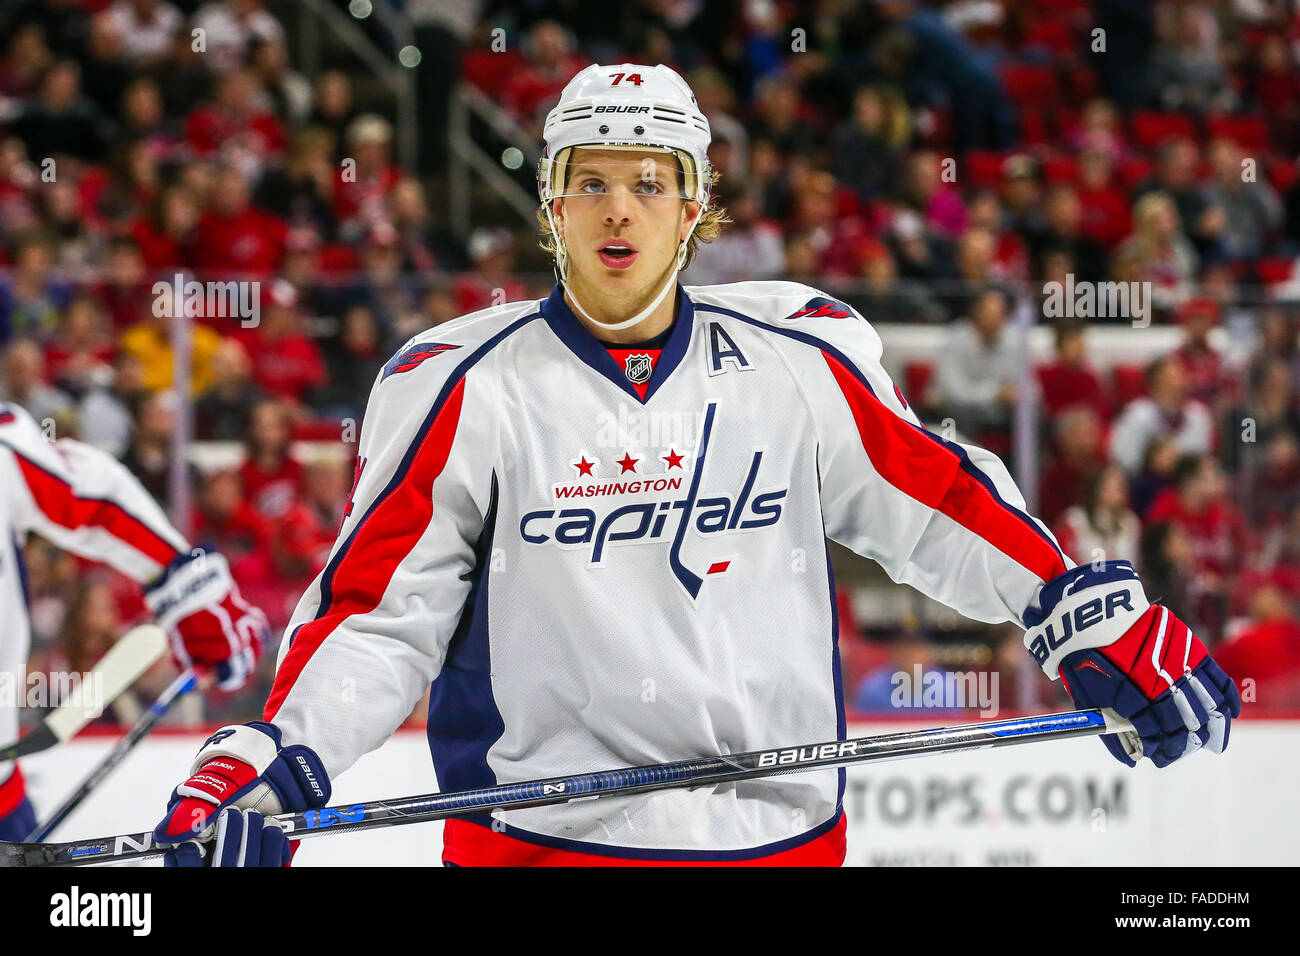 Washington Capitals defenseman John Carlson (74) during the NHL game  between the Washington Capitals and the Carolina Hurricanes at the PNC  Arena. 1a49b50c3cd